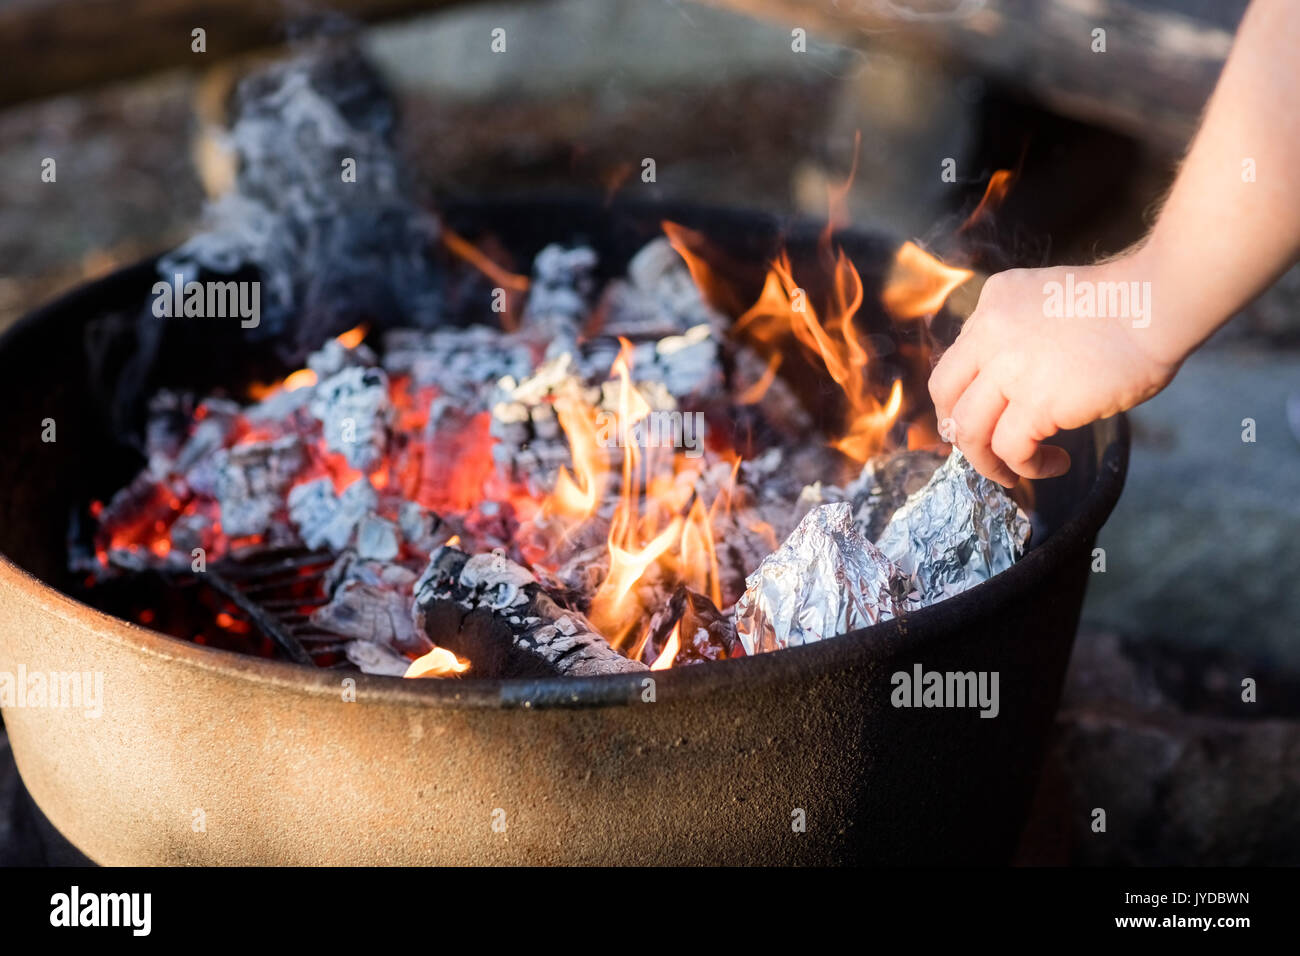 Closeup Of Hand Grilling Food Wrapped In Foil On Firepit - Stock Image